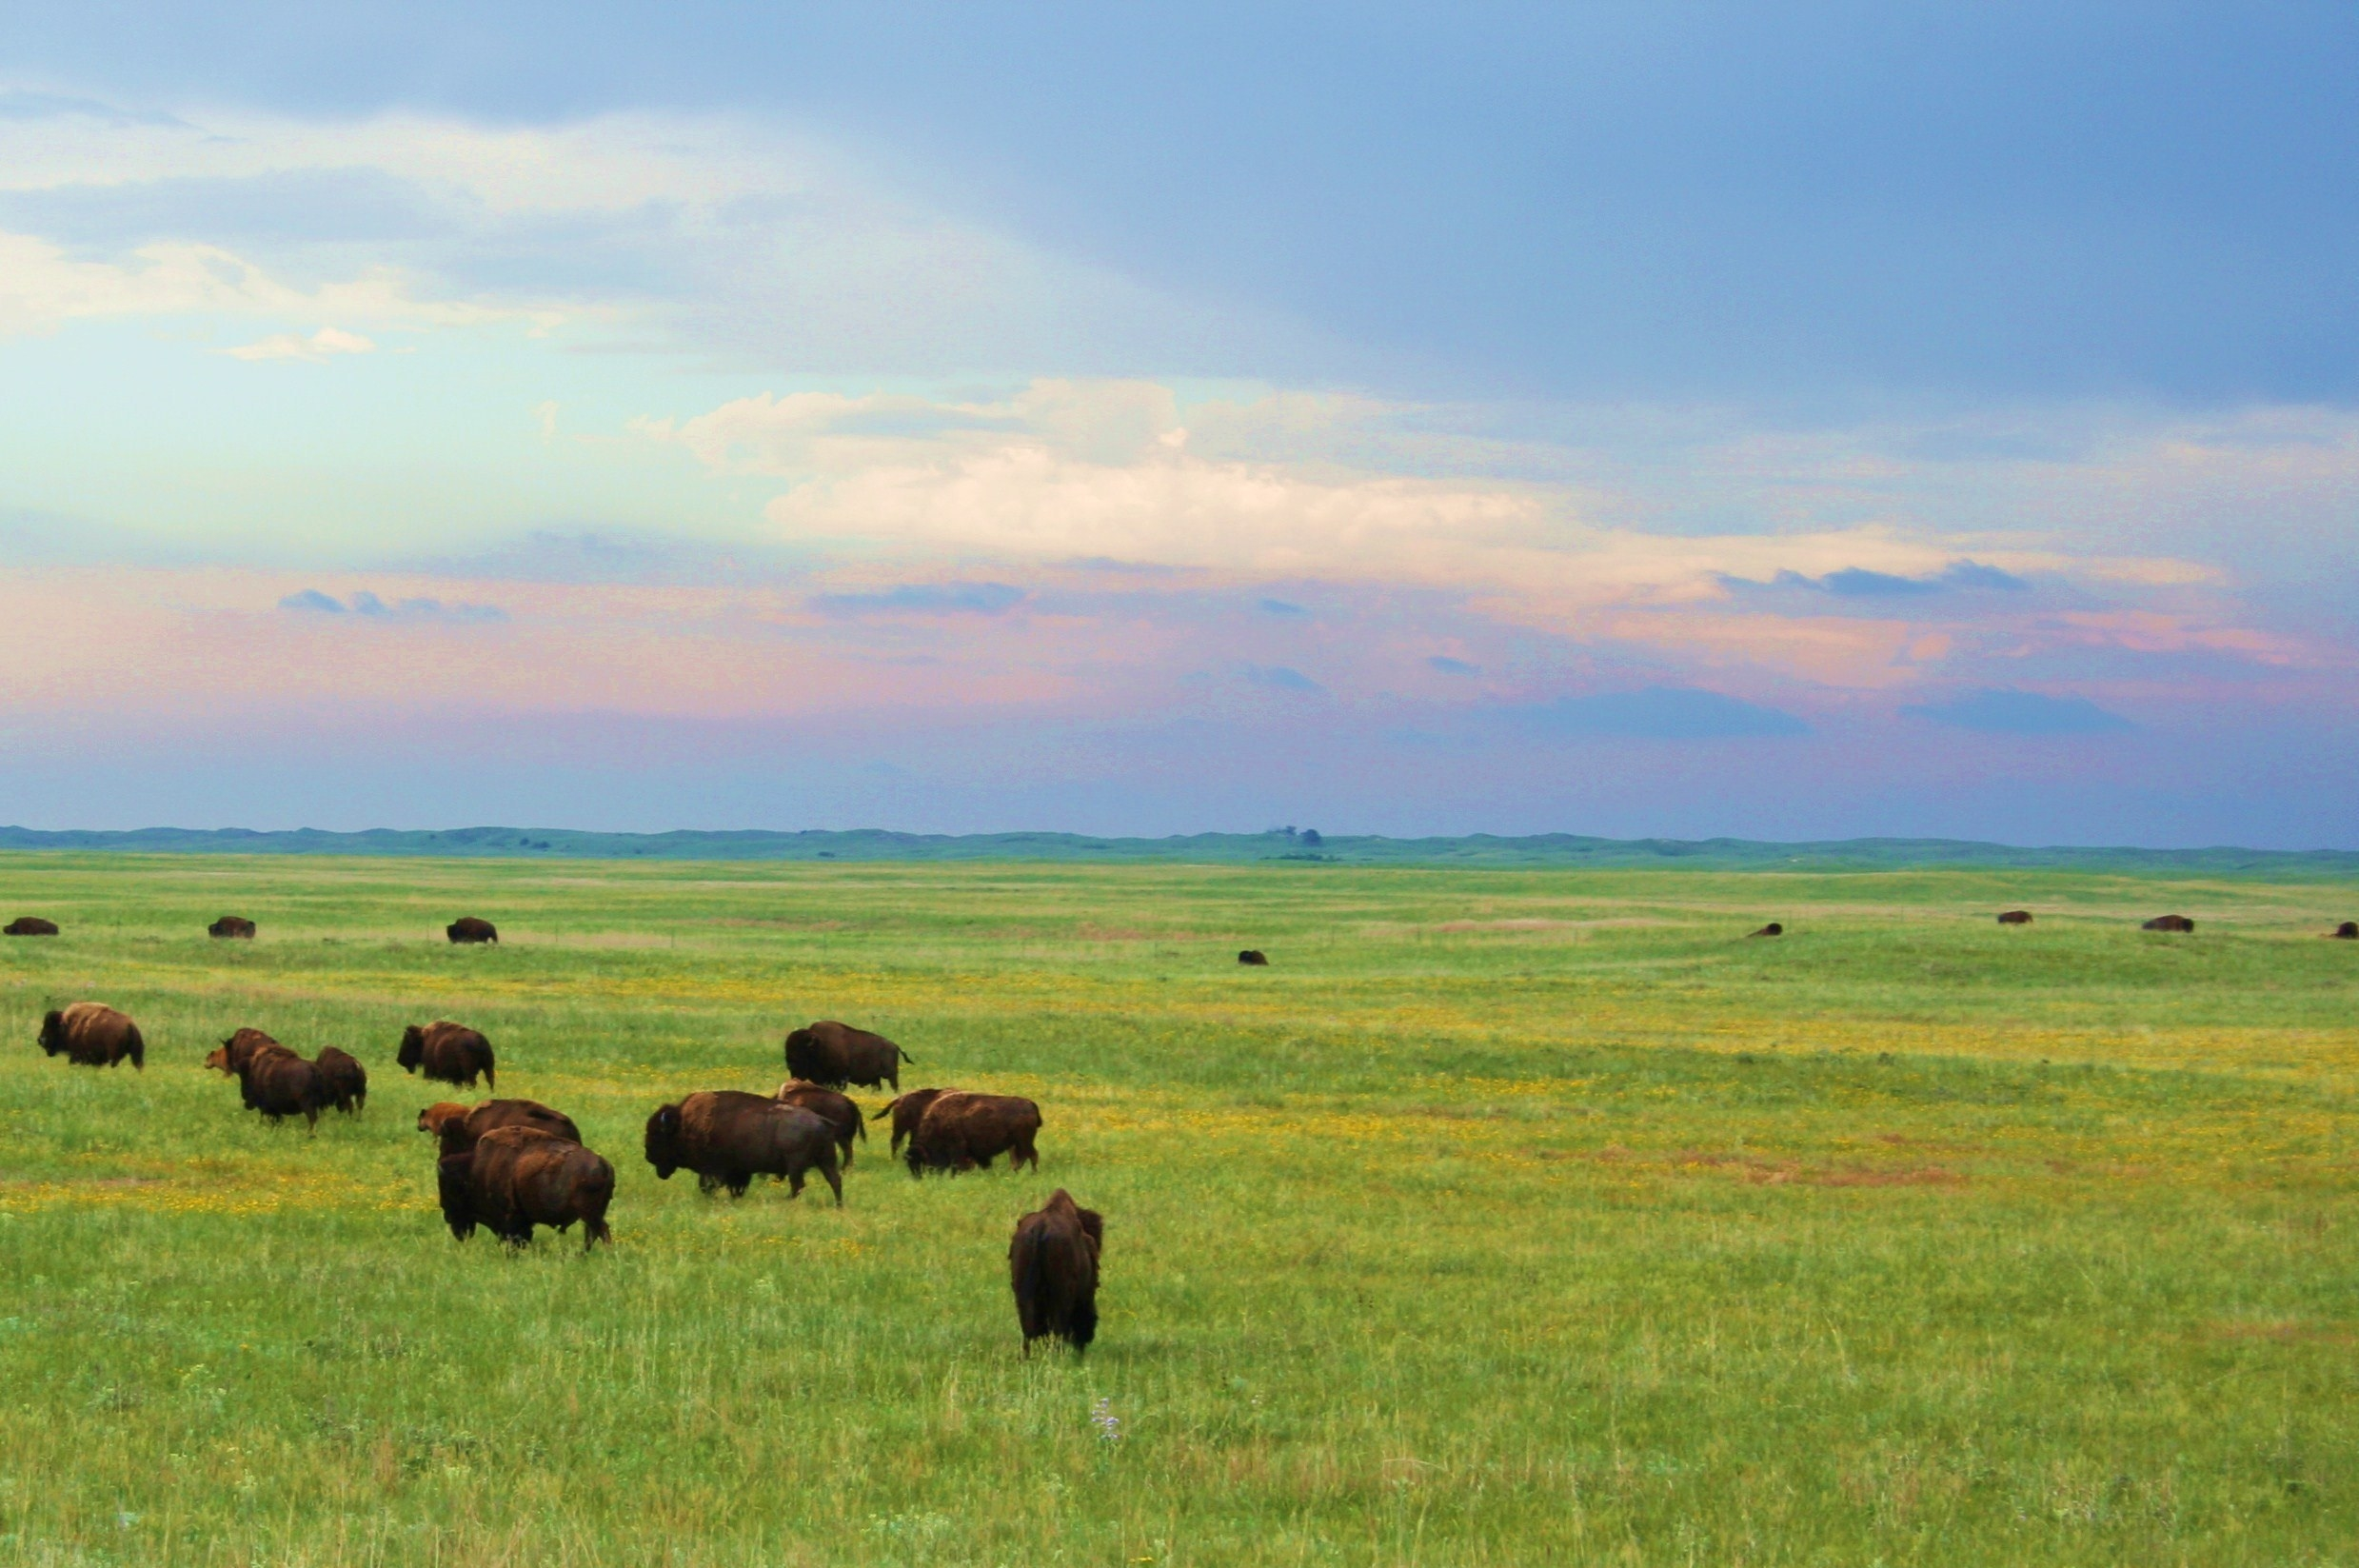 A green field full of buffalo under a blue, pink, and cloudy sky